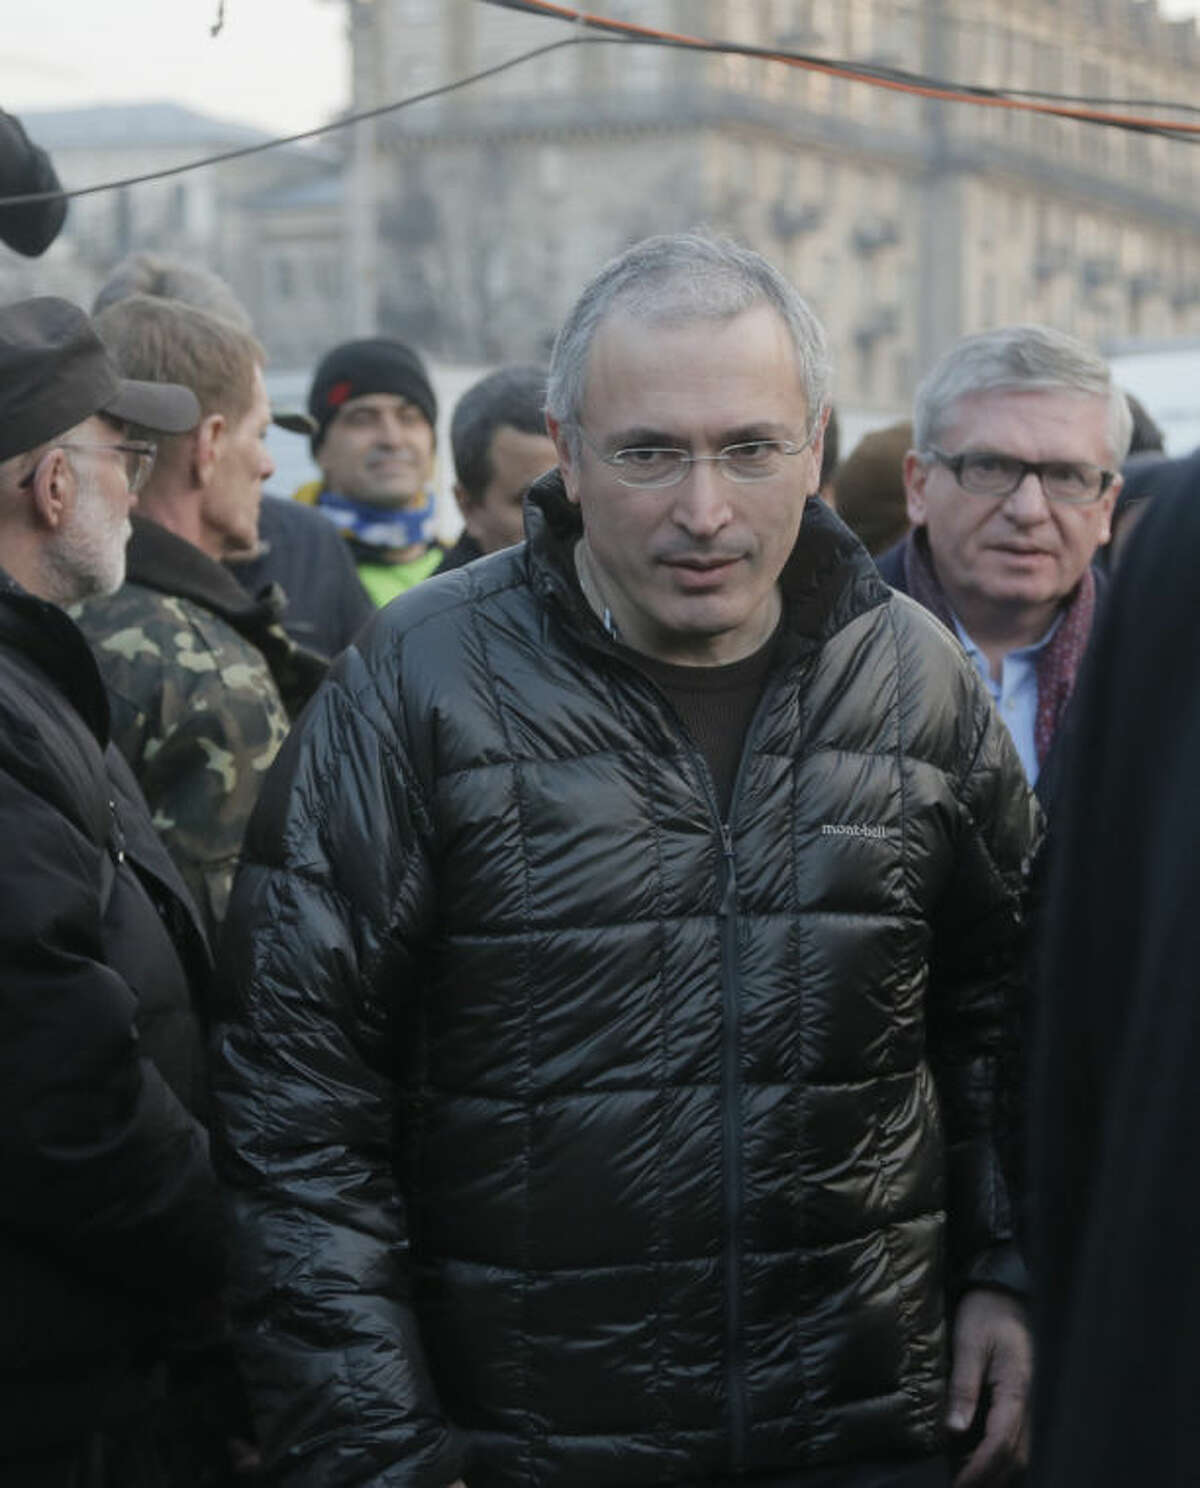 Russian former oil tycoon Mikhail Khodorkovsky goes in the Independence Square to make a speach during a rally in Kiev, Ukraine, Sunday, March 9, 2014. Khodorkovsky, addressing a crowd on the square where demonstrators rose up against Ukraine's Moscow-backed president, said on Sunday Russia had been complicit in police violence against the protesters. (AP Photo/Efrem Lukatsky)